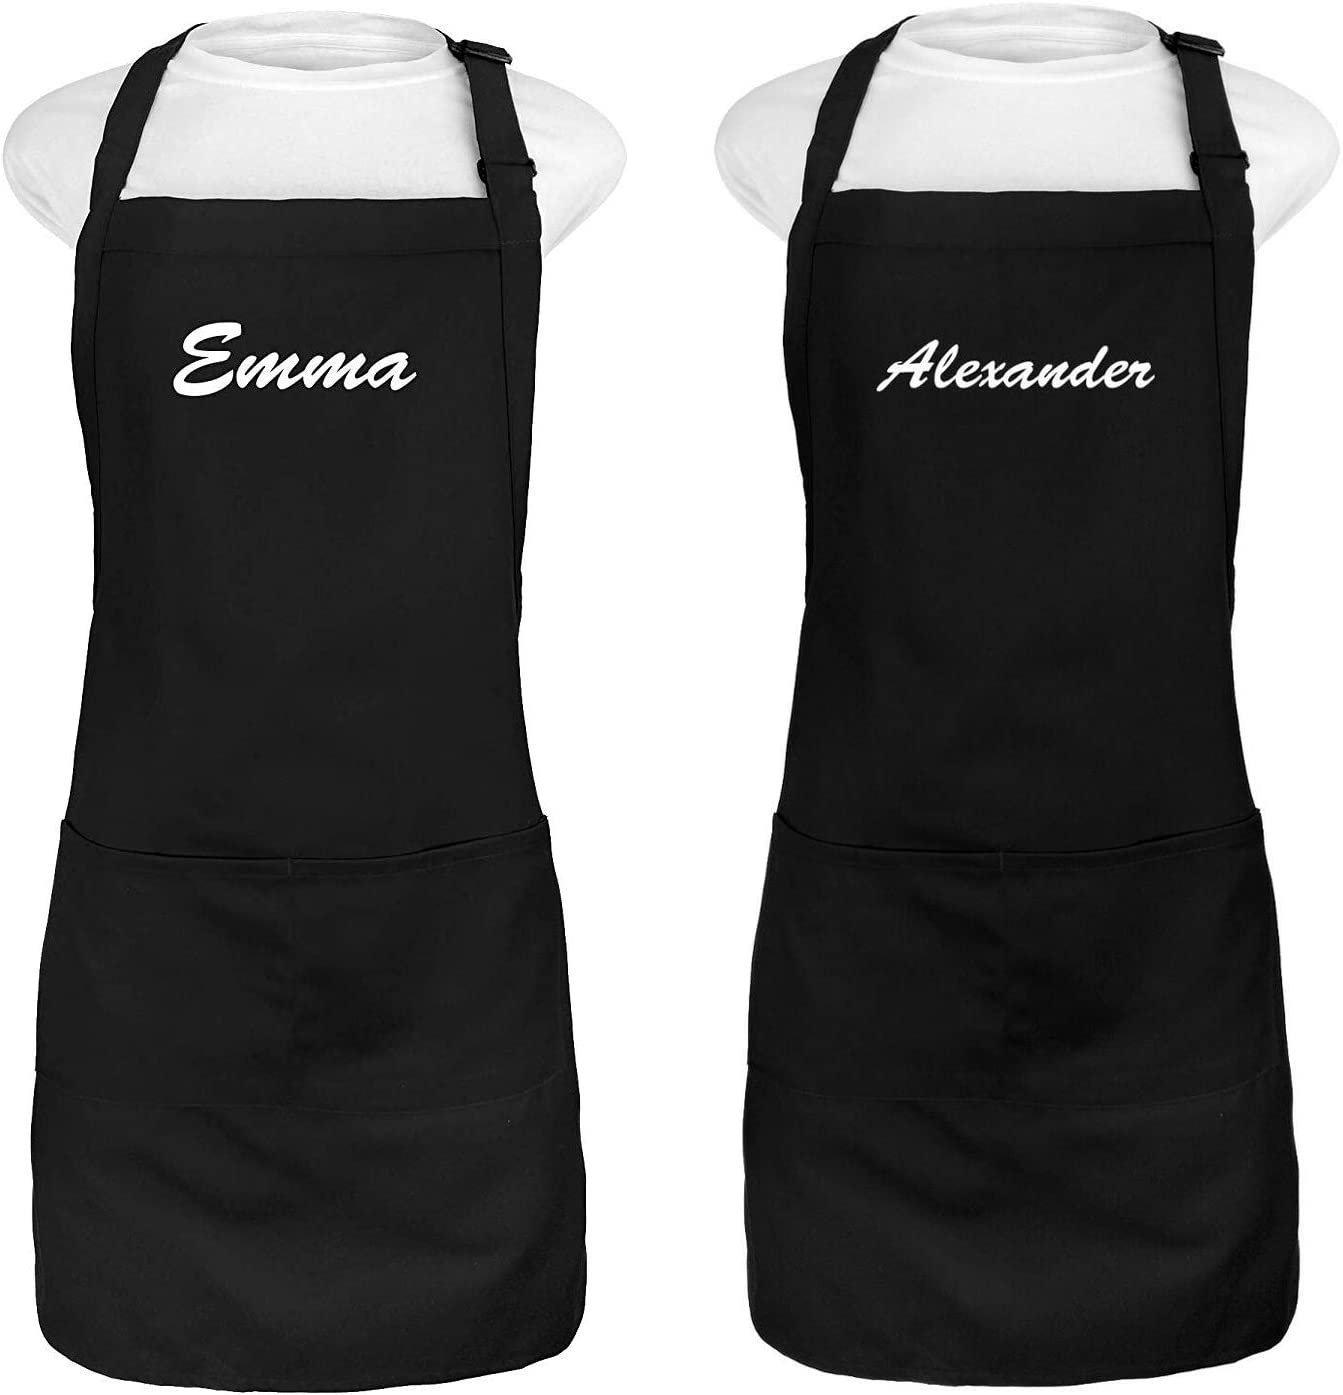 Kaufman - Set of Today's only Two Personalized Embroidered Name a Apron Add Seattle Mall